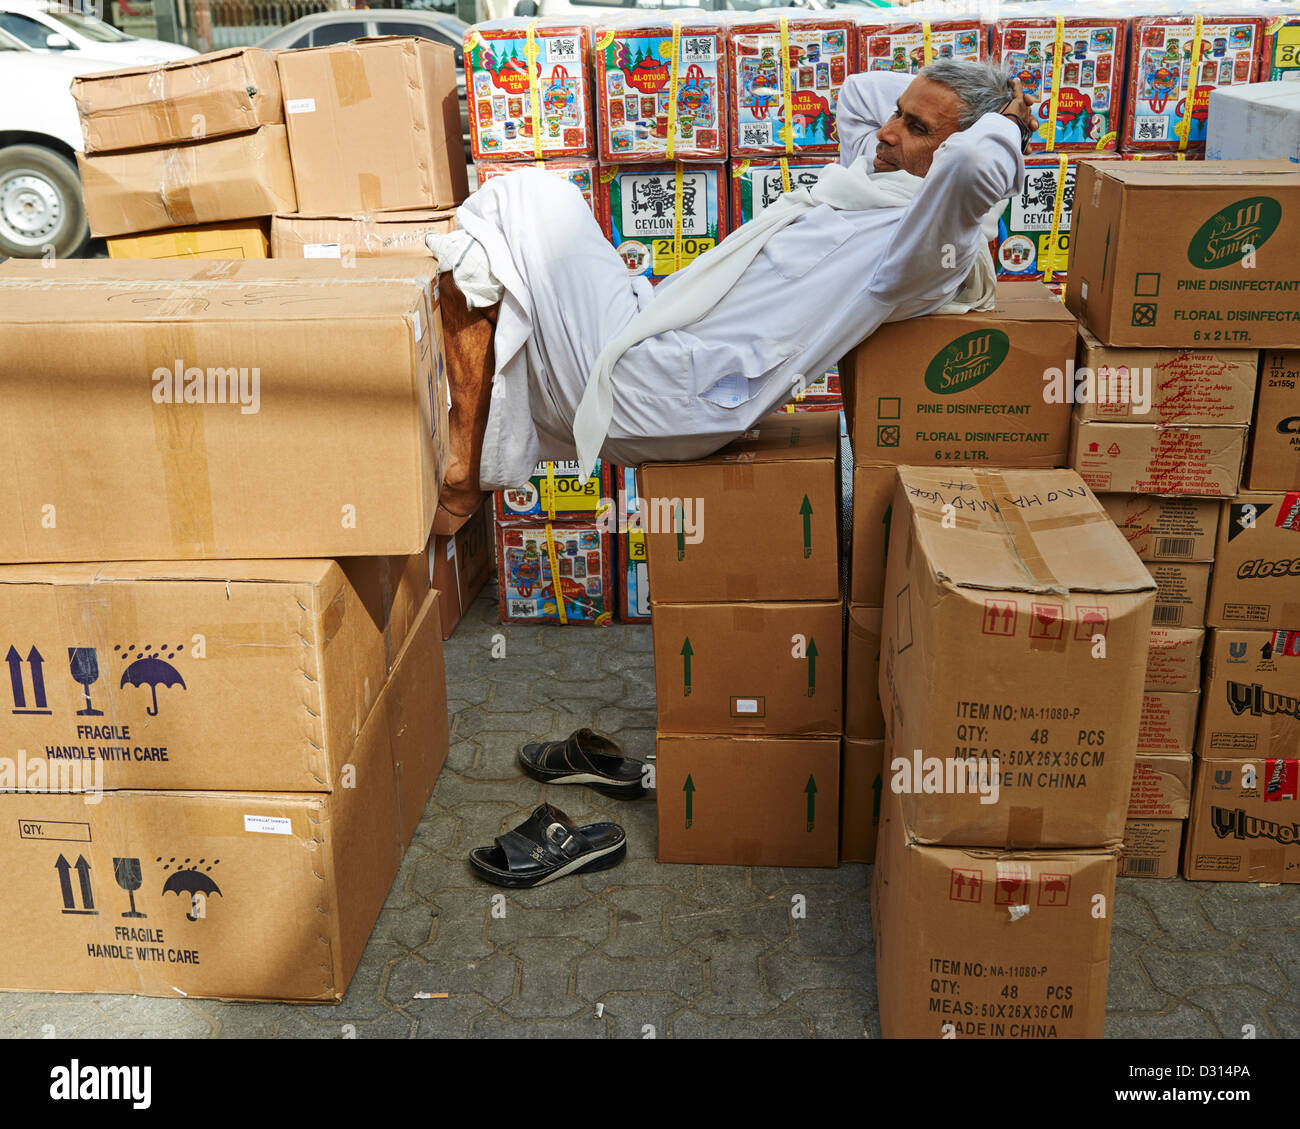 A man resting precariously on cardboard boxes - Stock Image